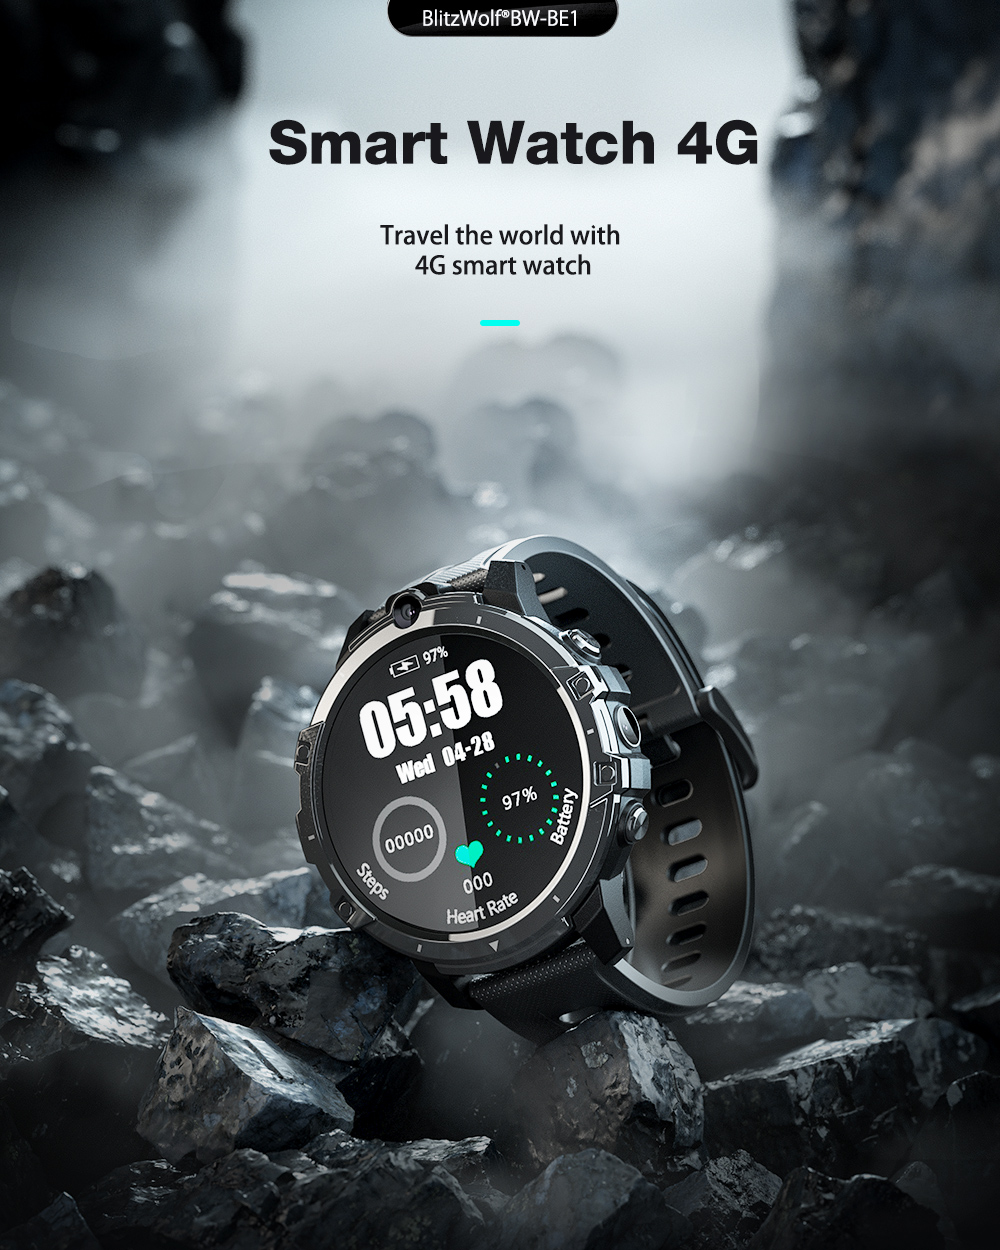 Blitzwolf BW-BE1 Android smart watch